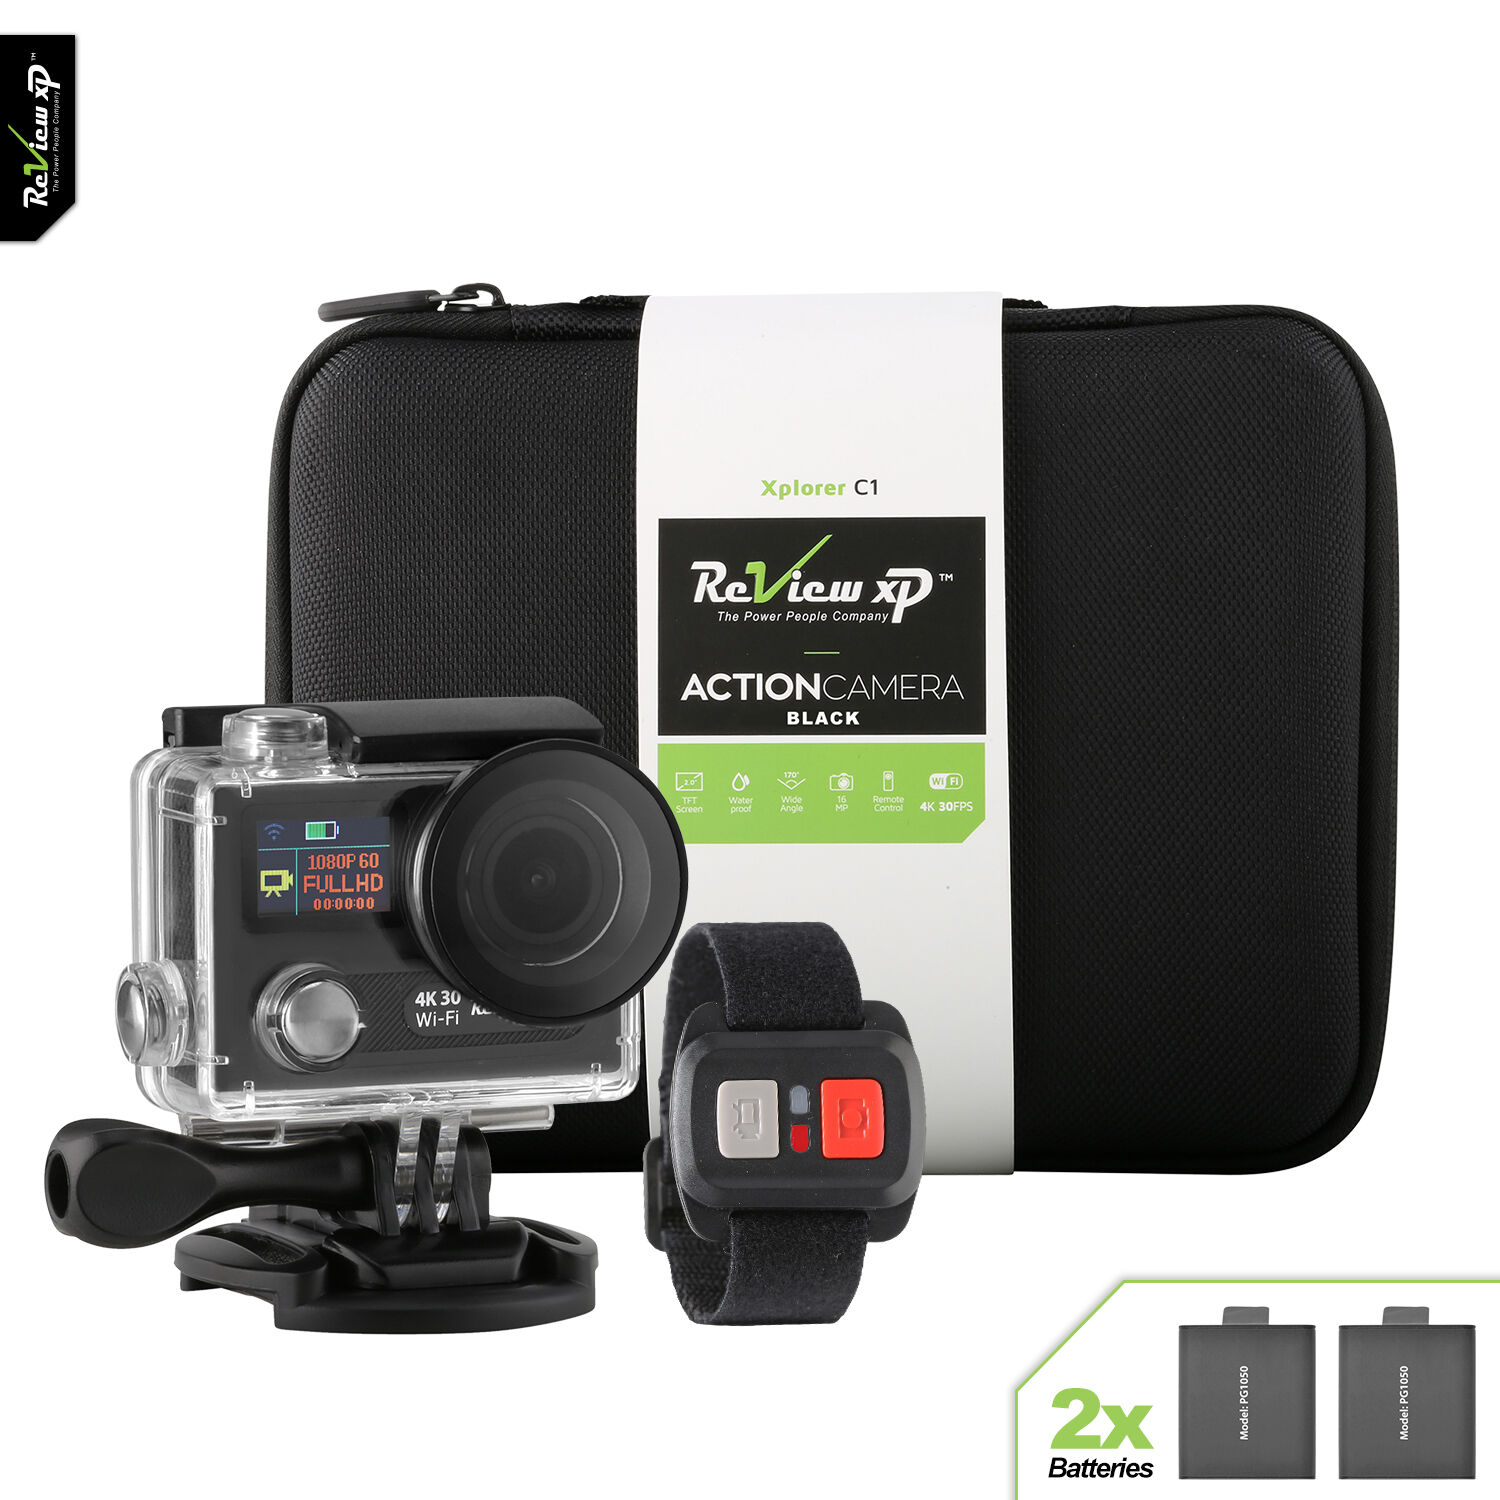 Review XP® 4K WiFi Underwater Waterproof Sports Action Camera 30fps +2 Batteries Featured